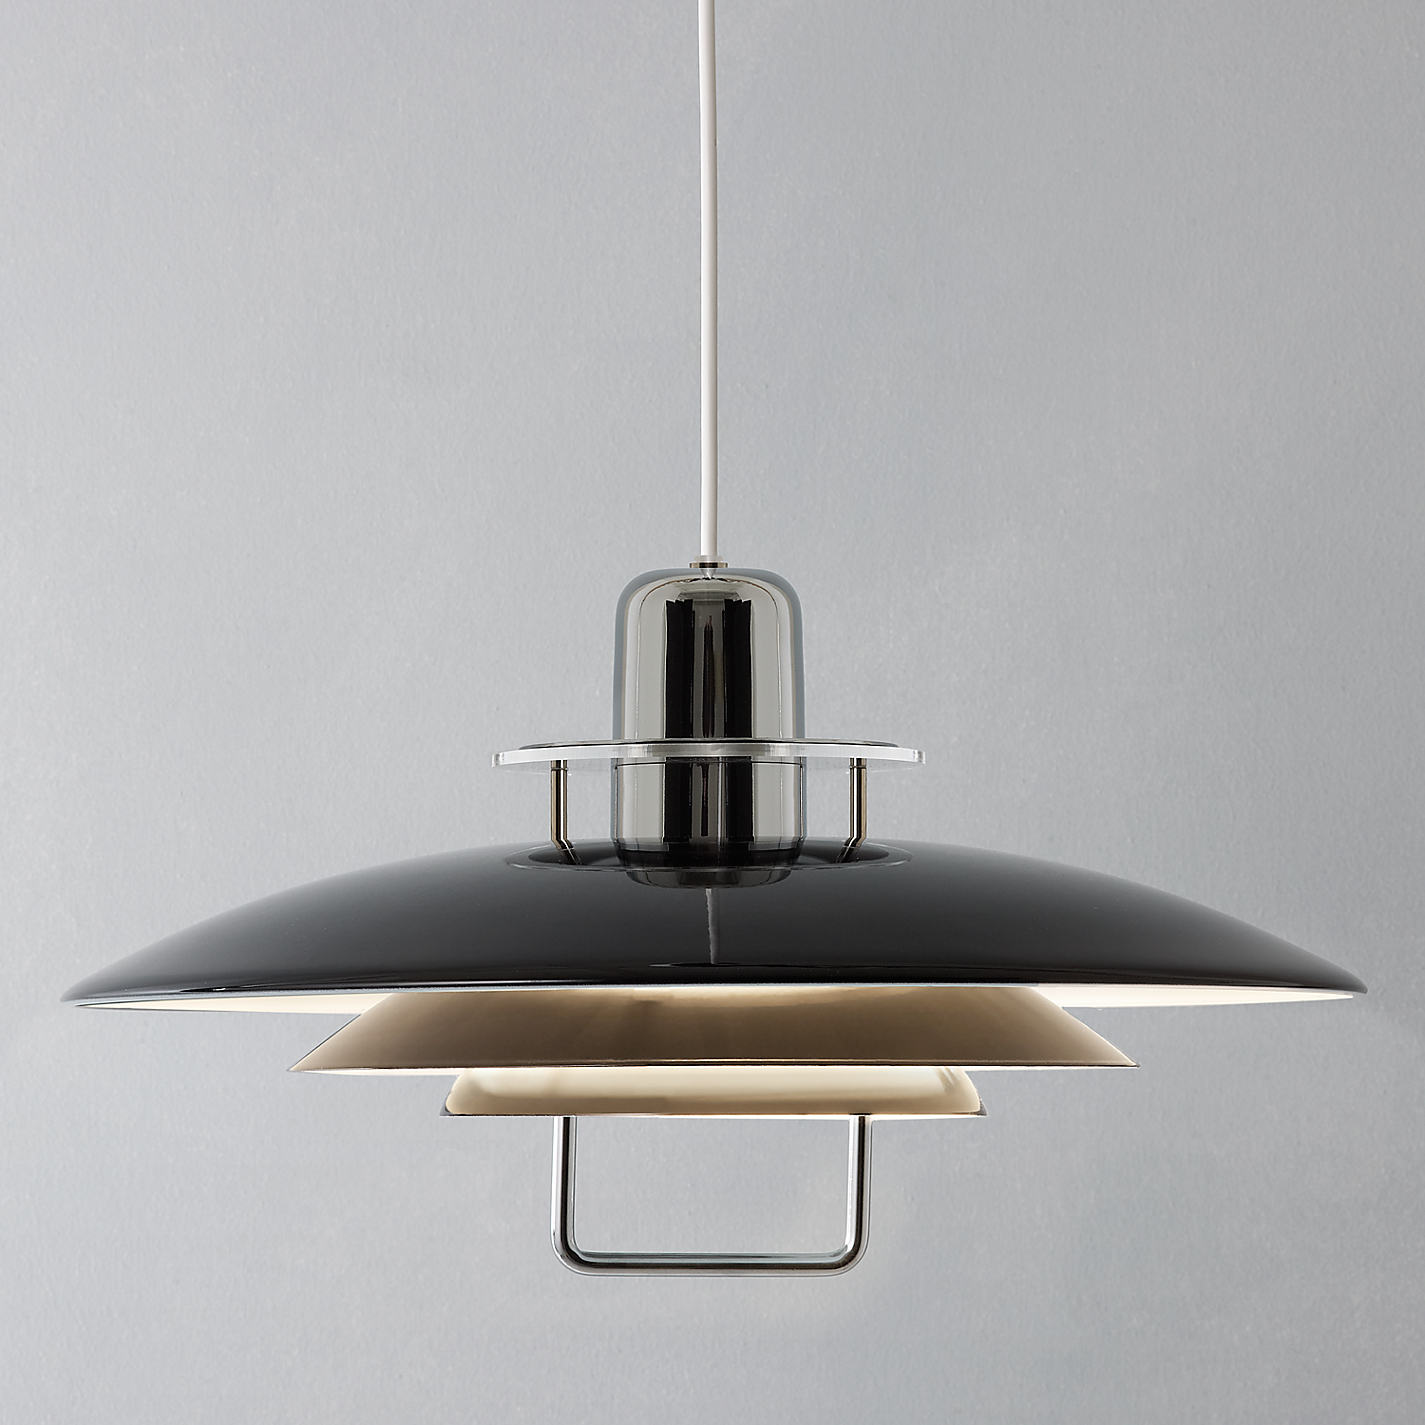 buy belid felix rise and fall ceiling light | john lewis